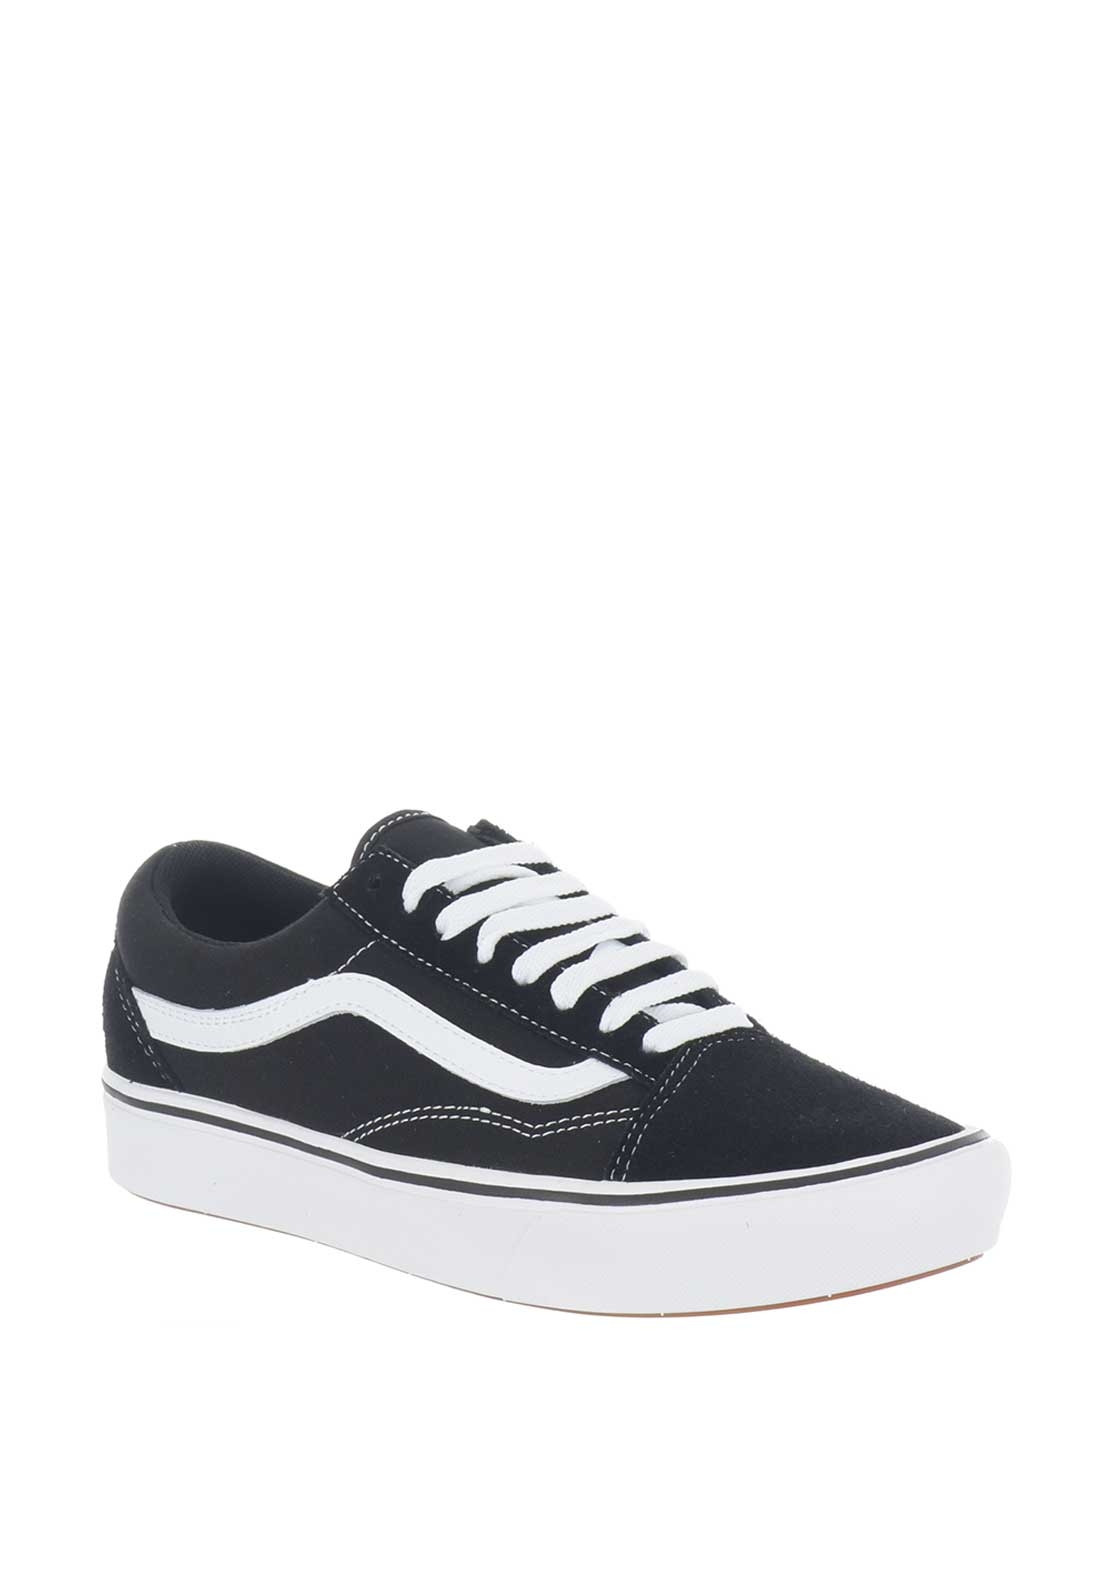 71e890a7ce8d Vans Canvas Comfy Cush Old Skool Trainers